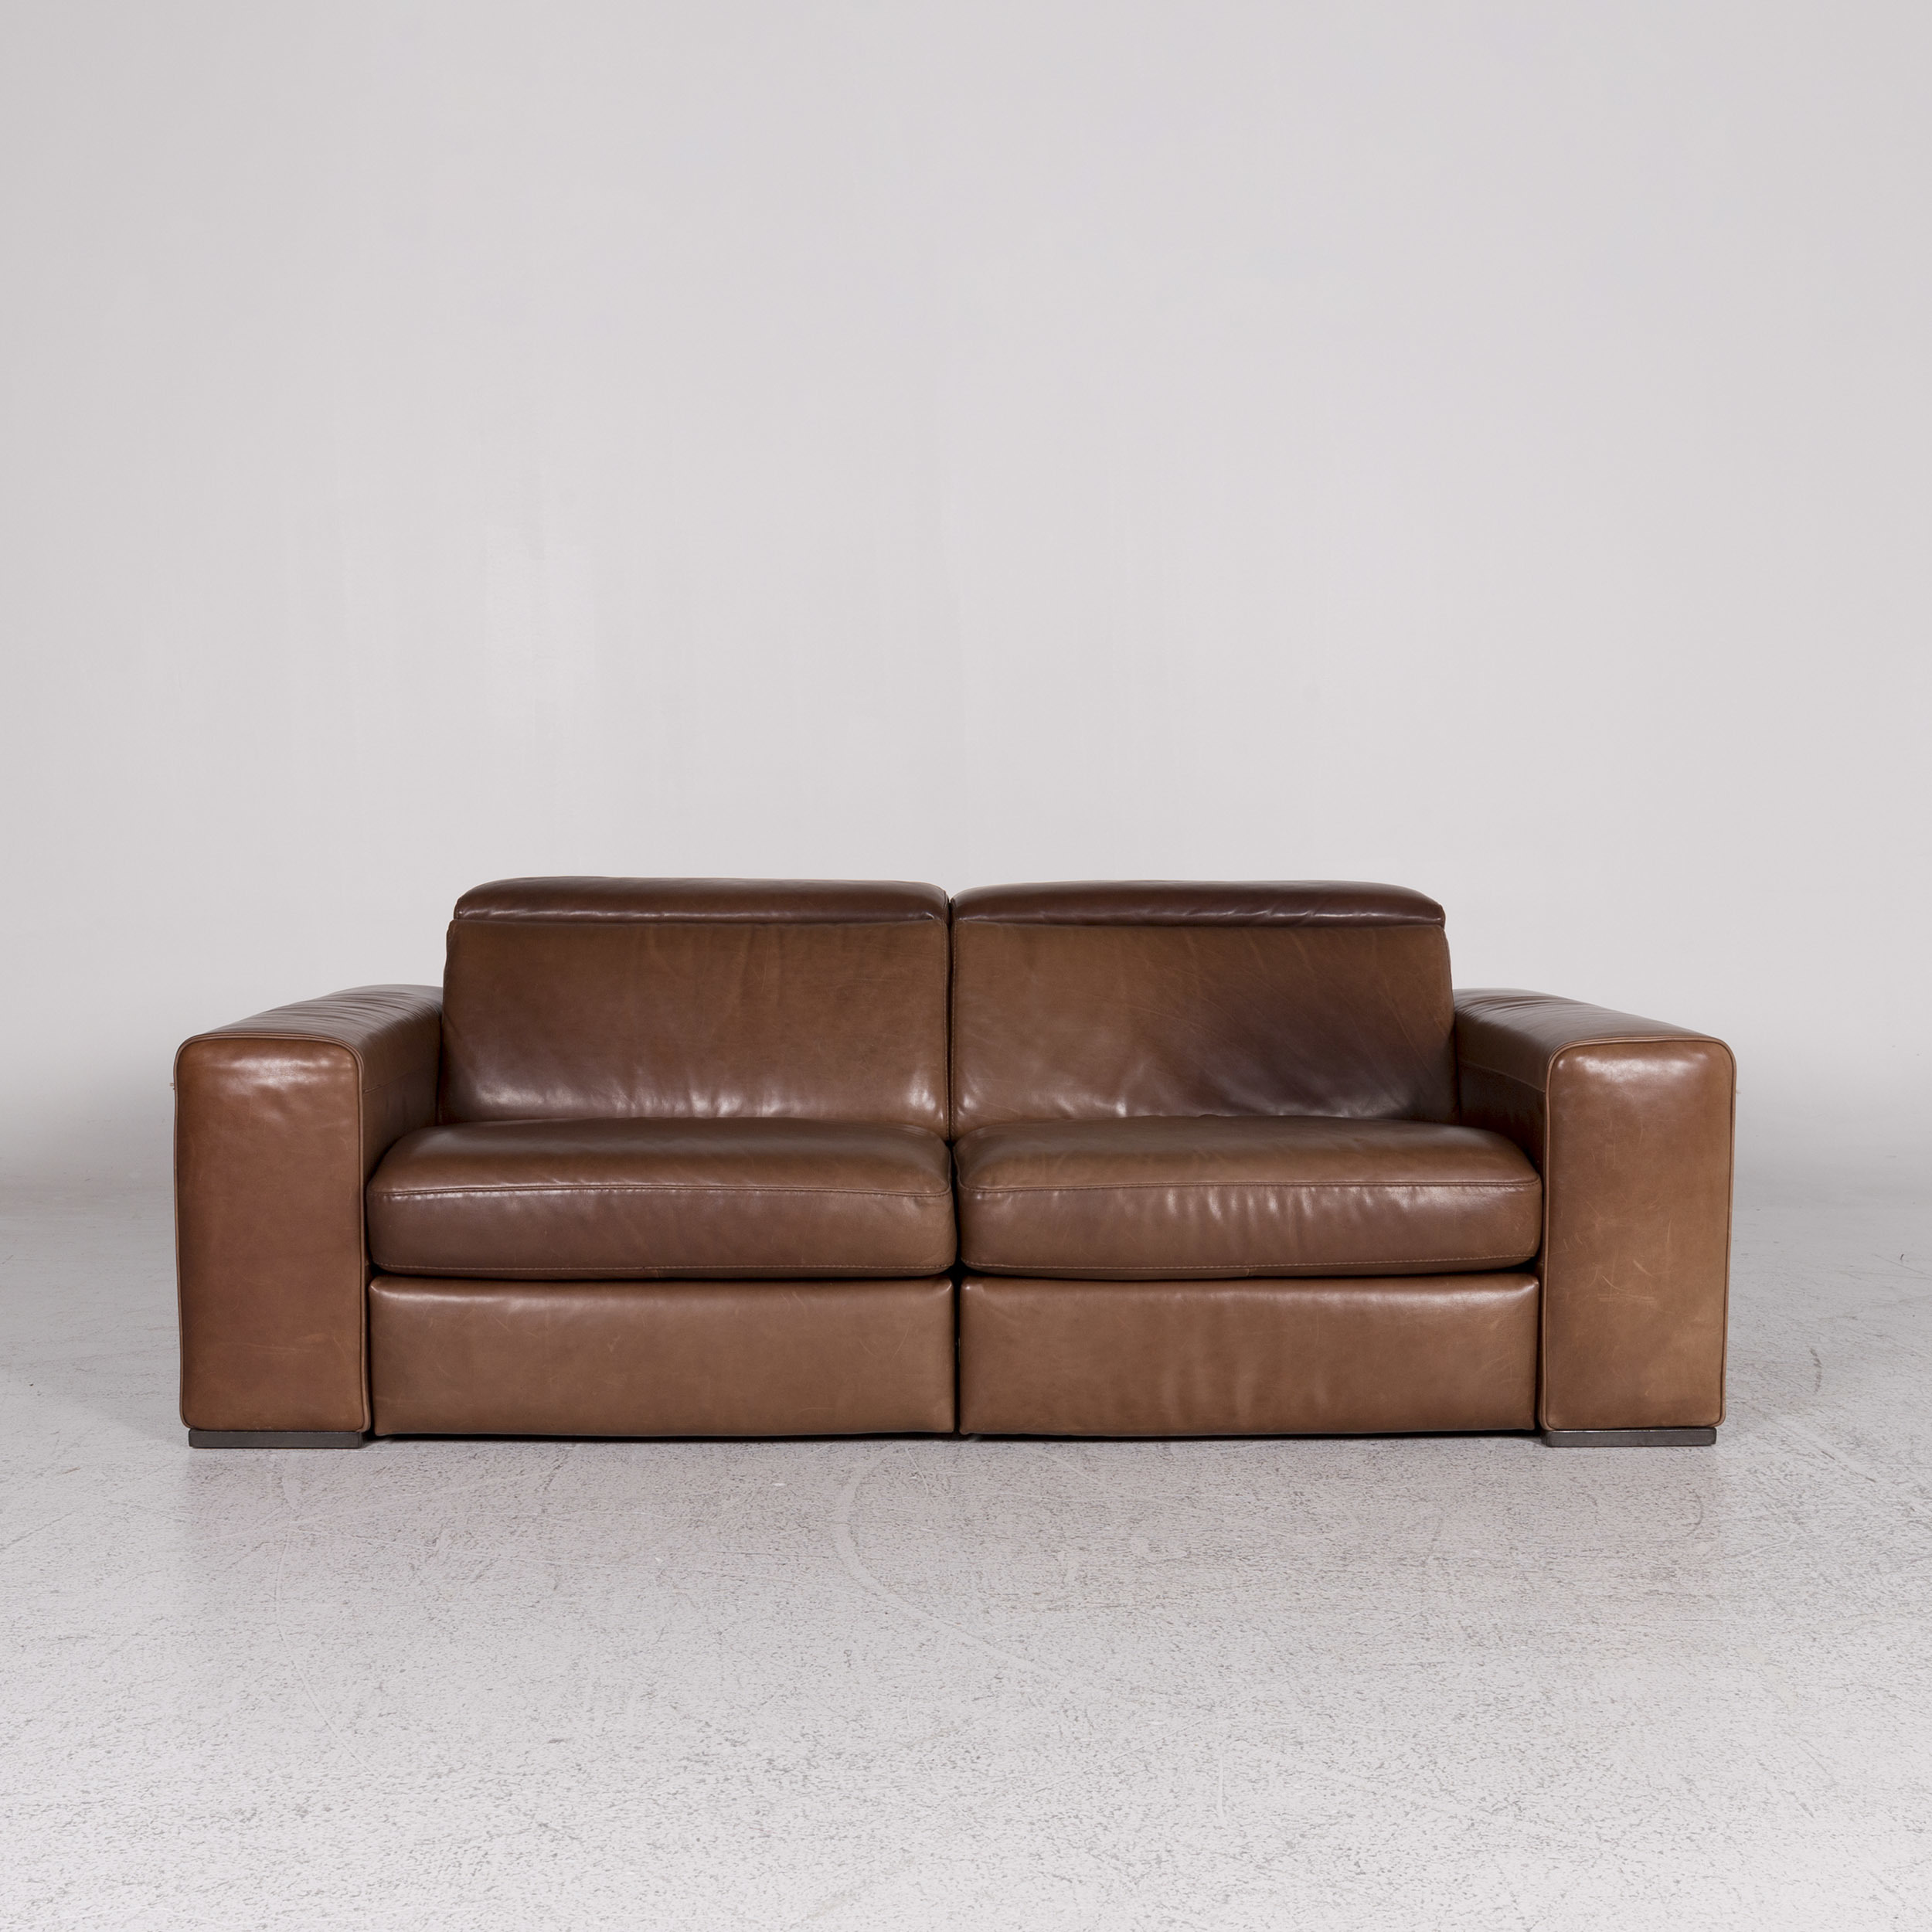 Relax Sofa Braun Natuzzi Designer Leather Sofa Brown Two Seater Relax Function Couch 9921